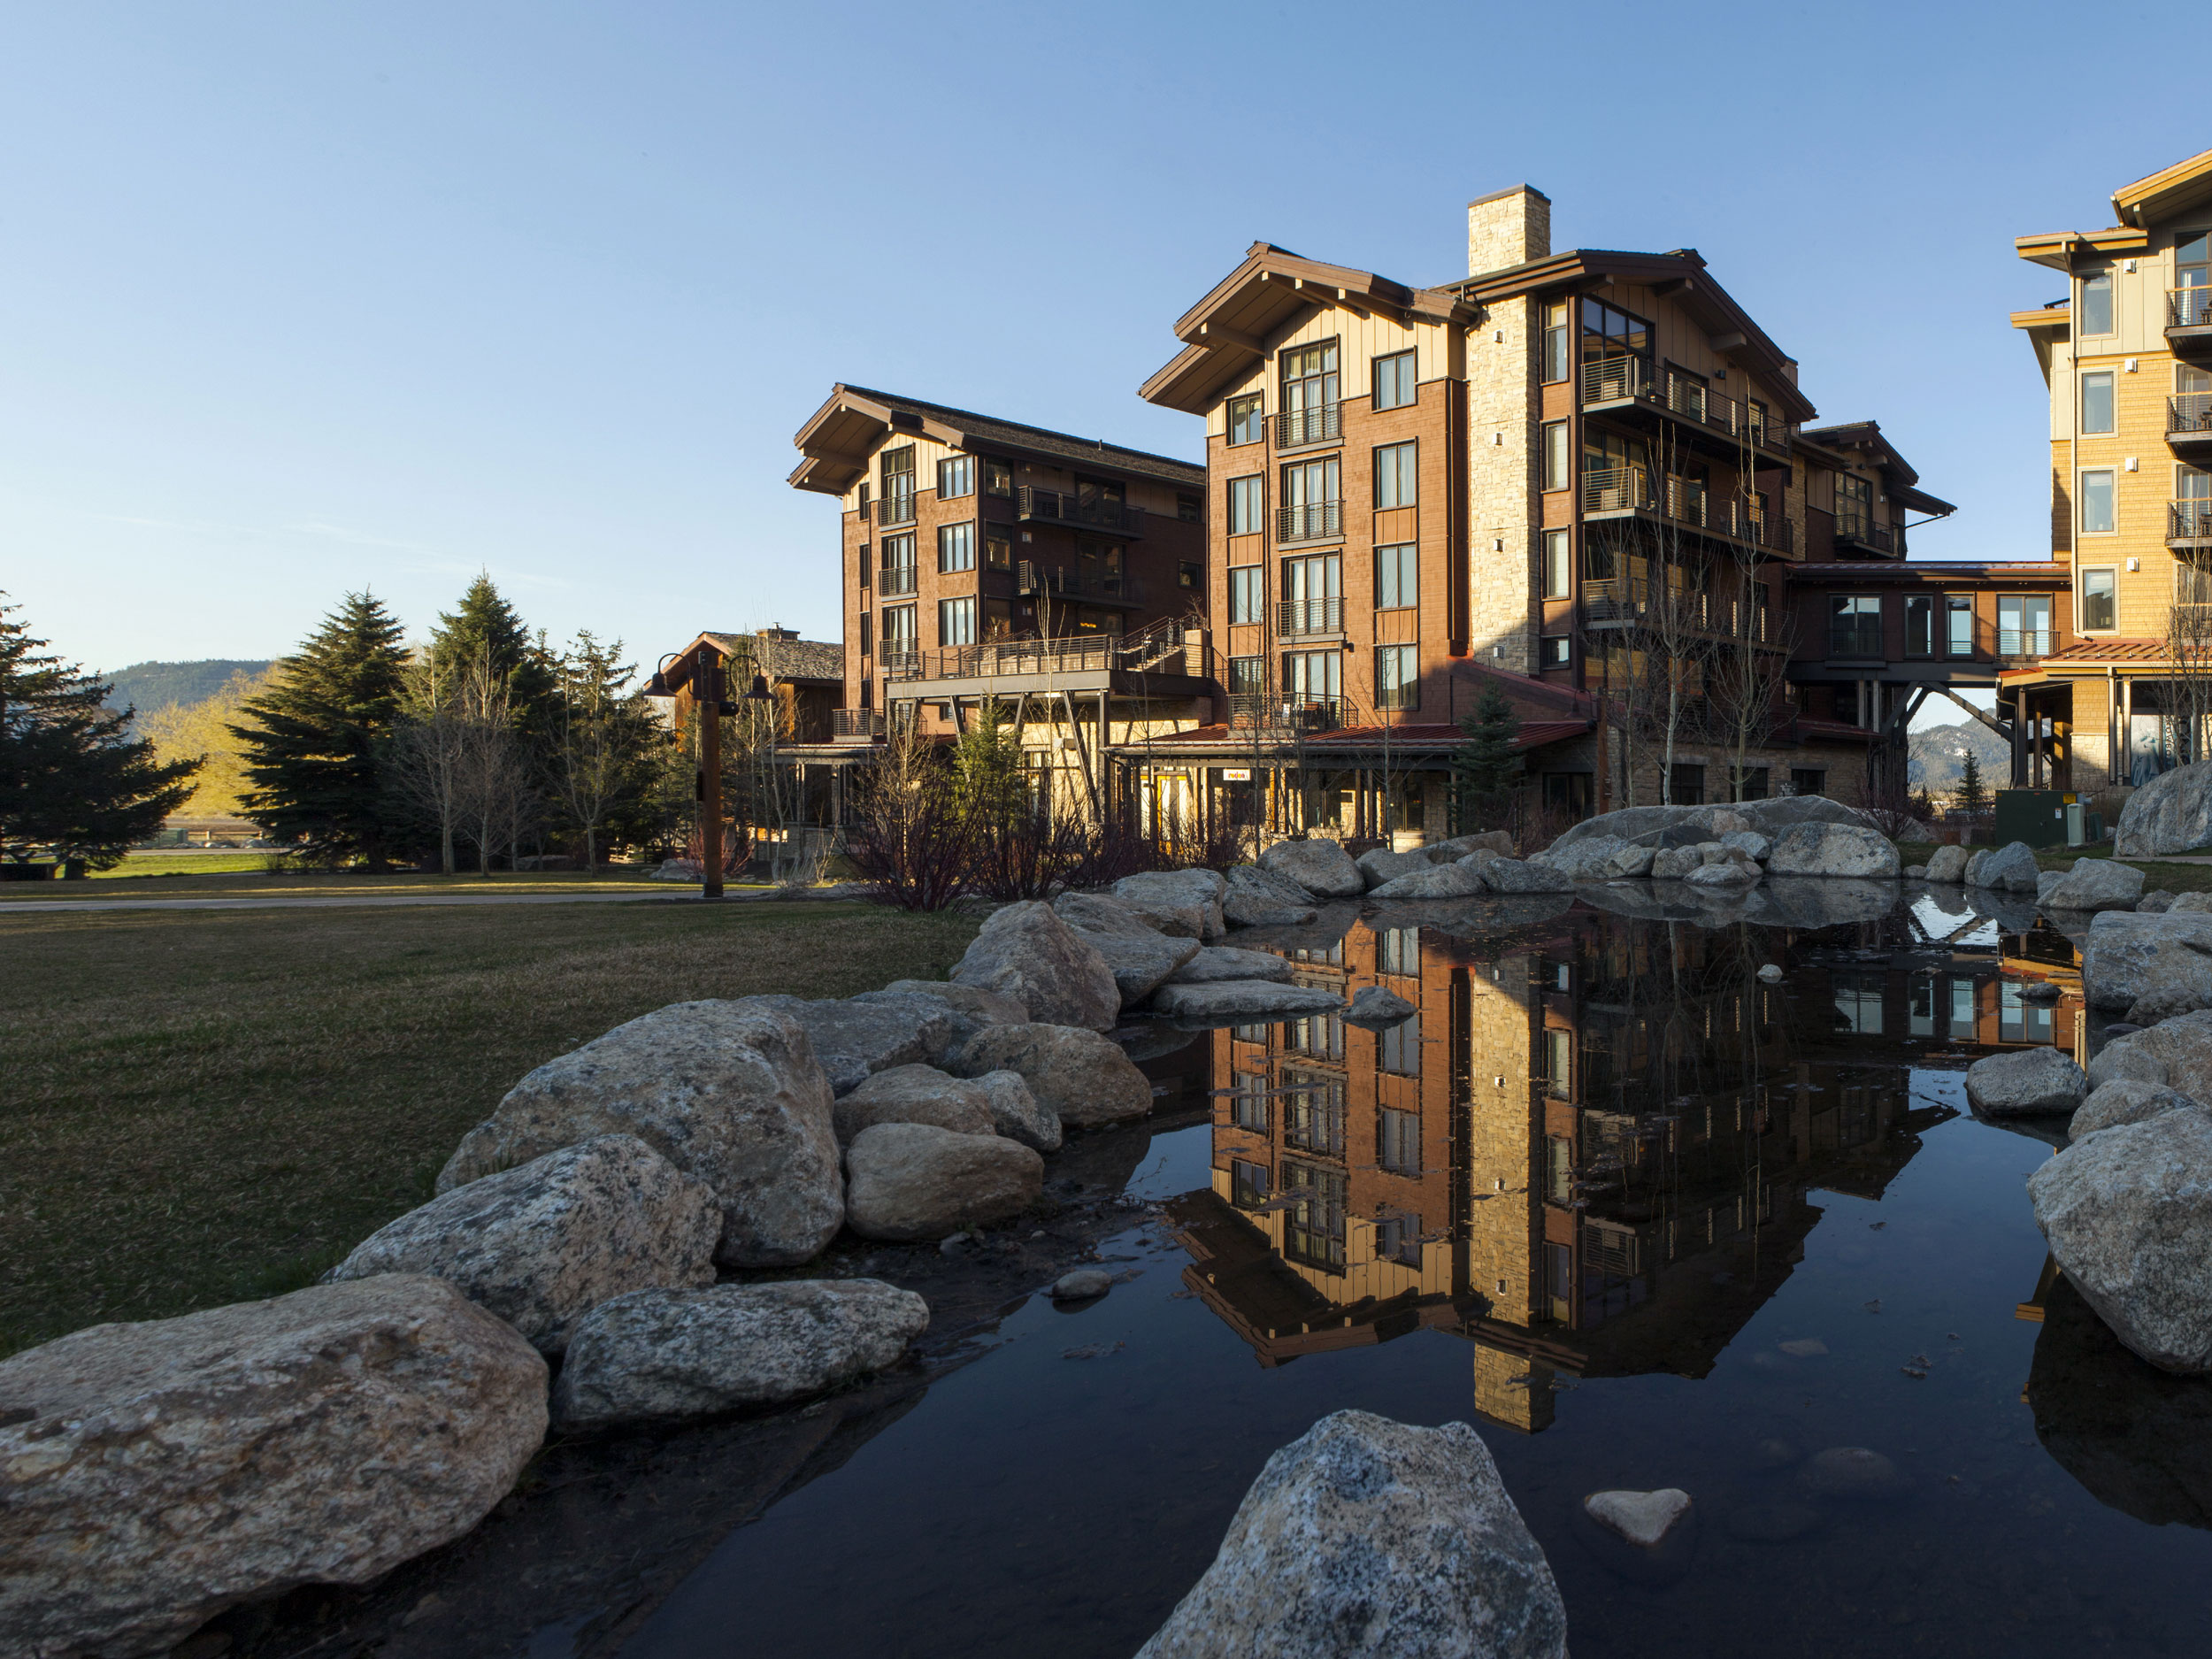 Ownership privileges include ski valet, concierge, and housekeeping services, a luxury spa and fine dining.